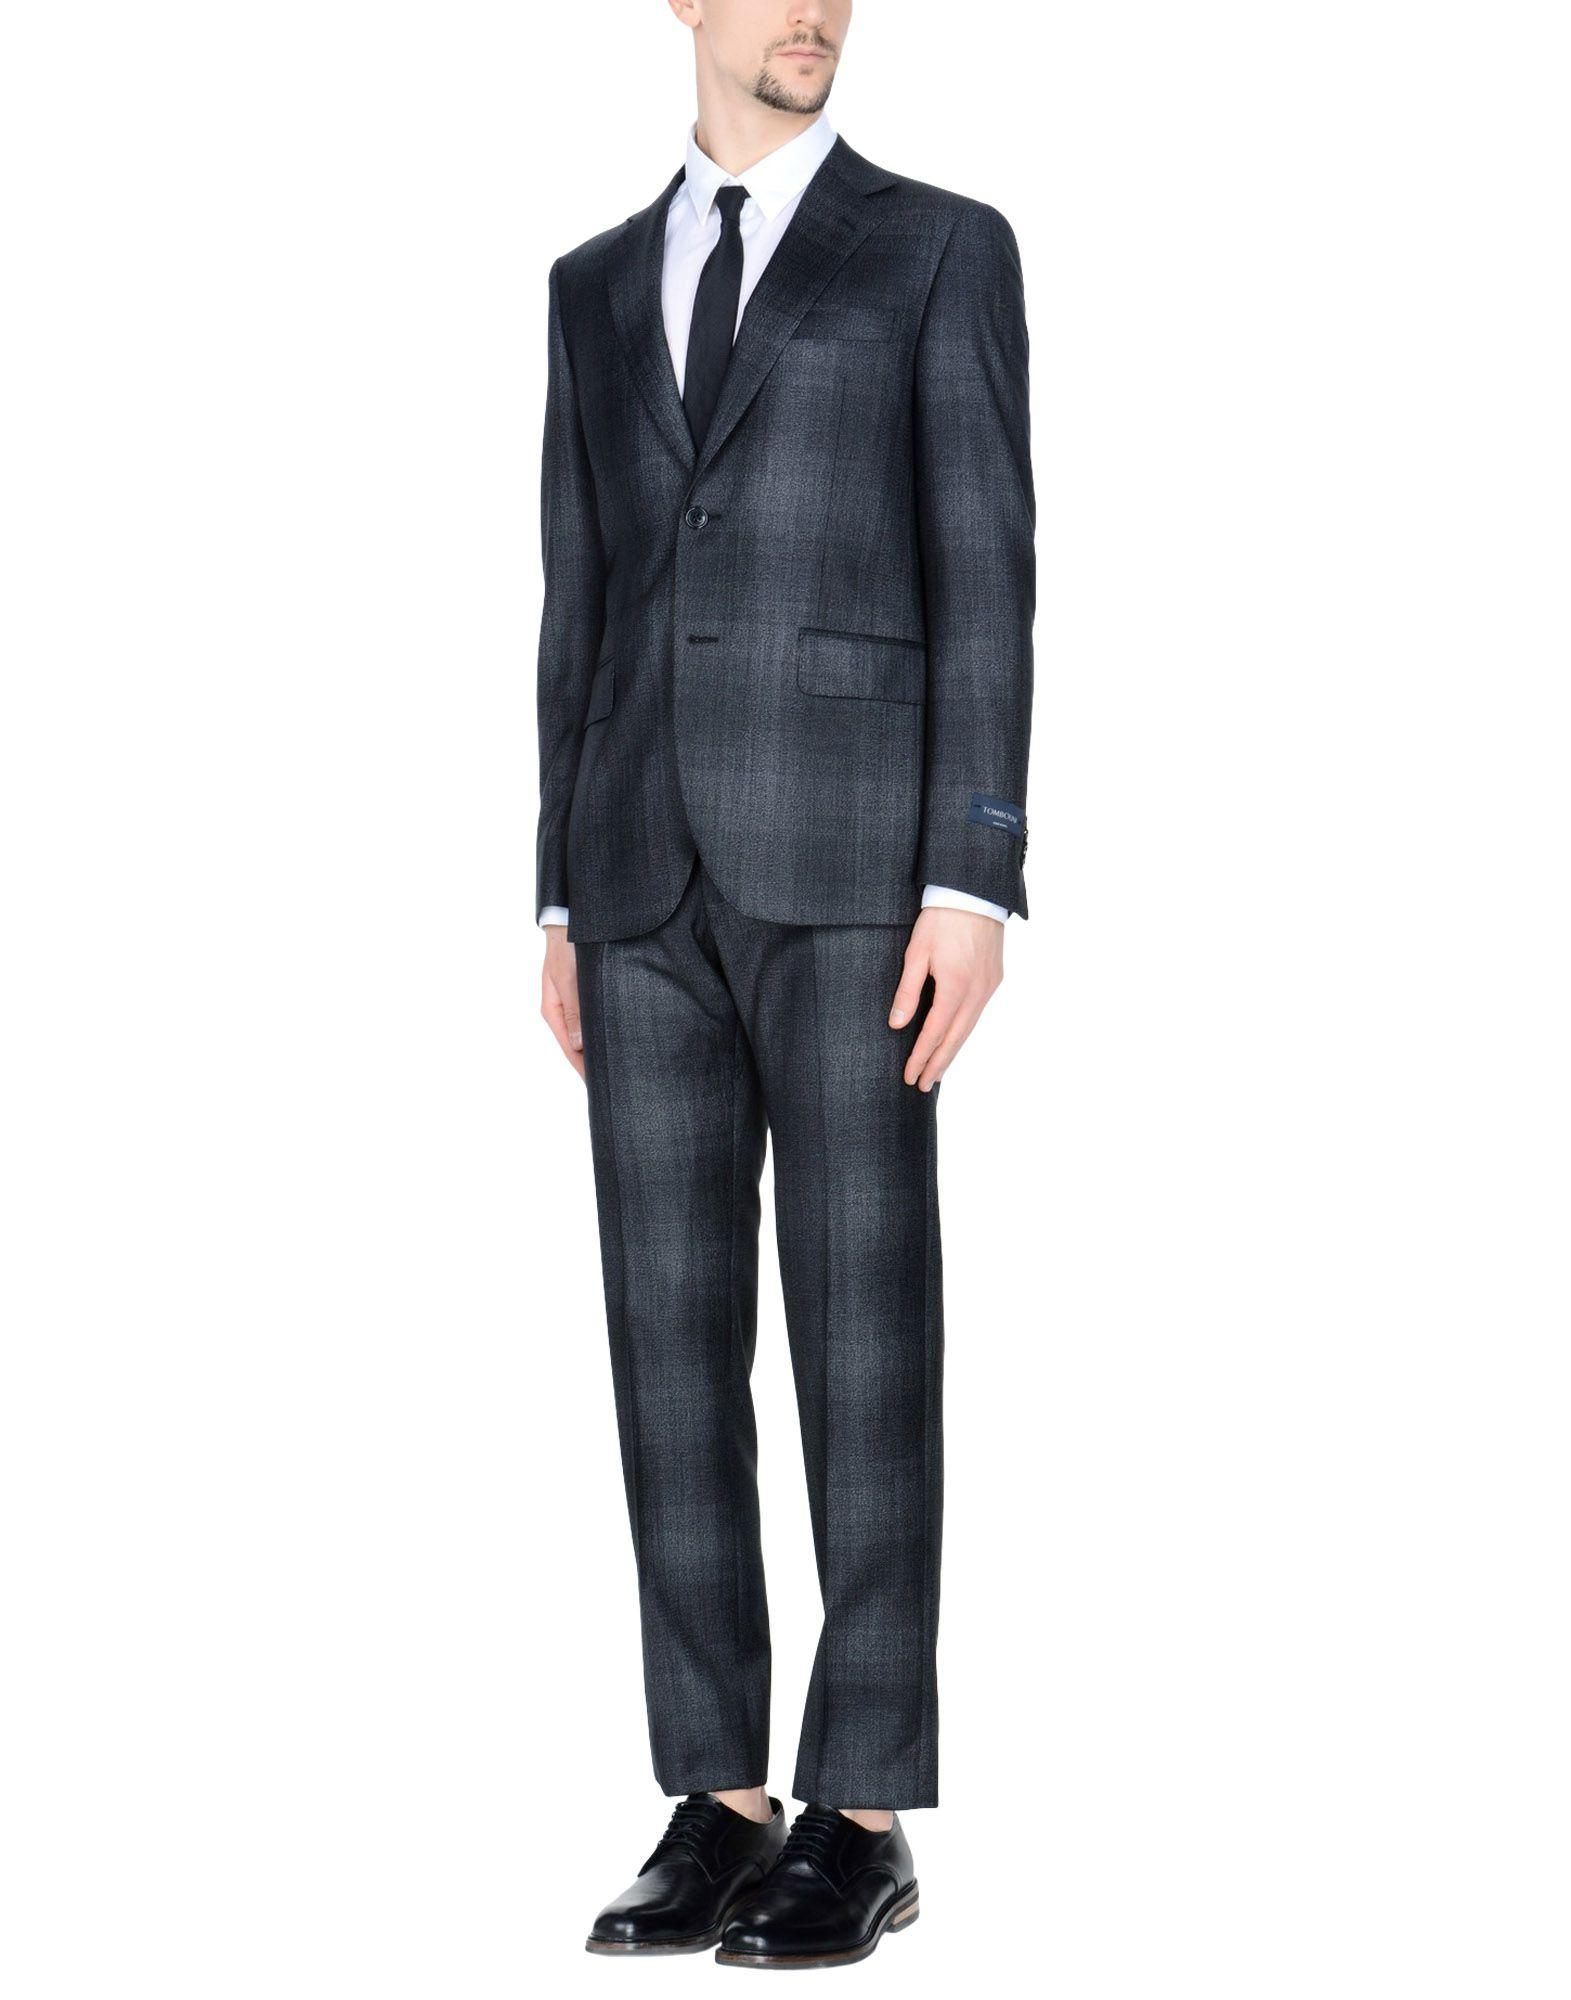 Tombolini Suits In Steel Grey